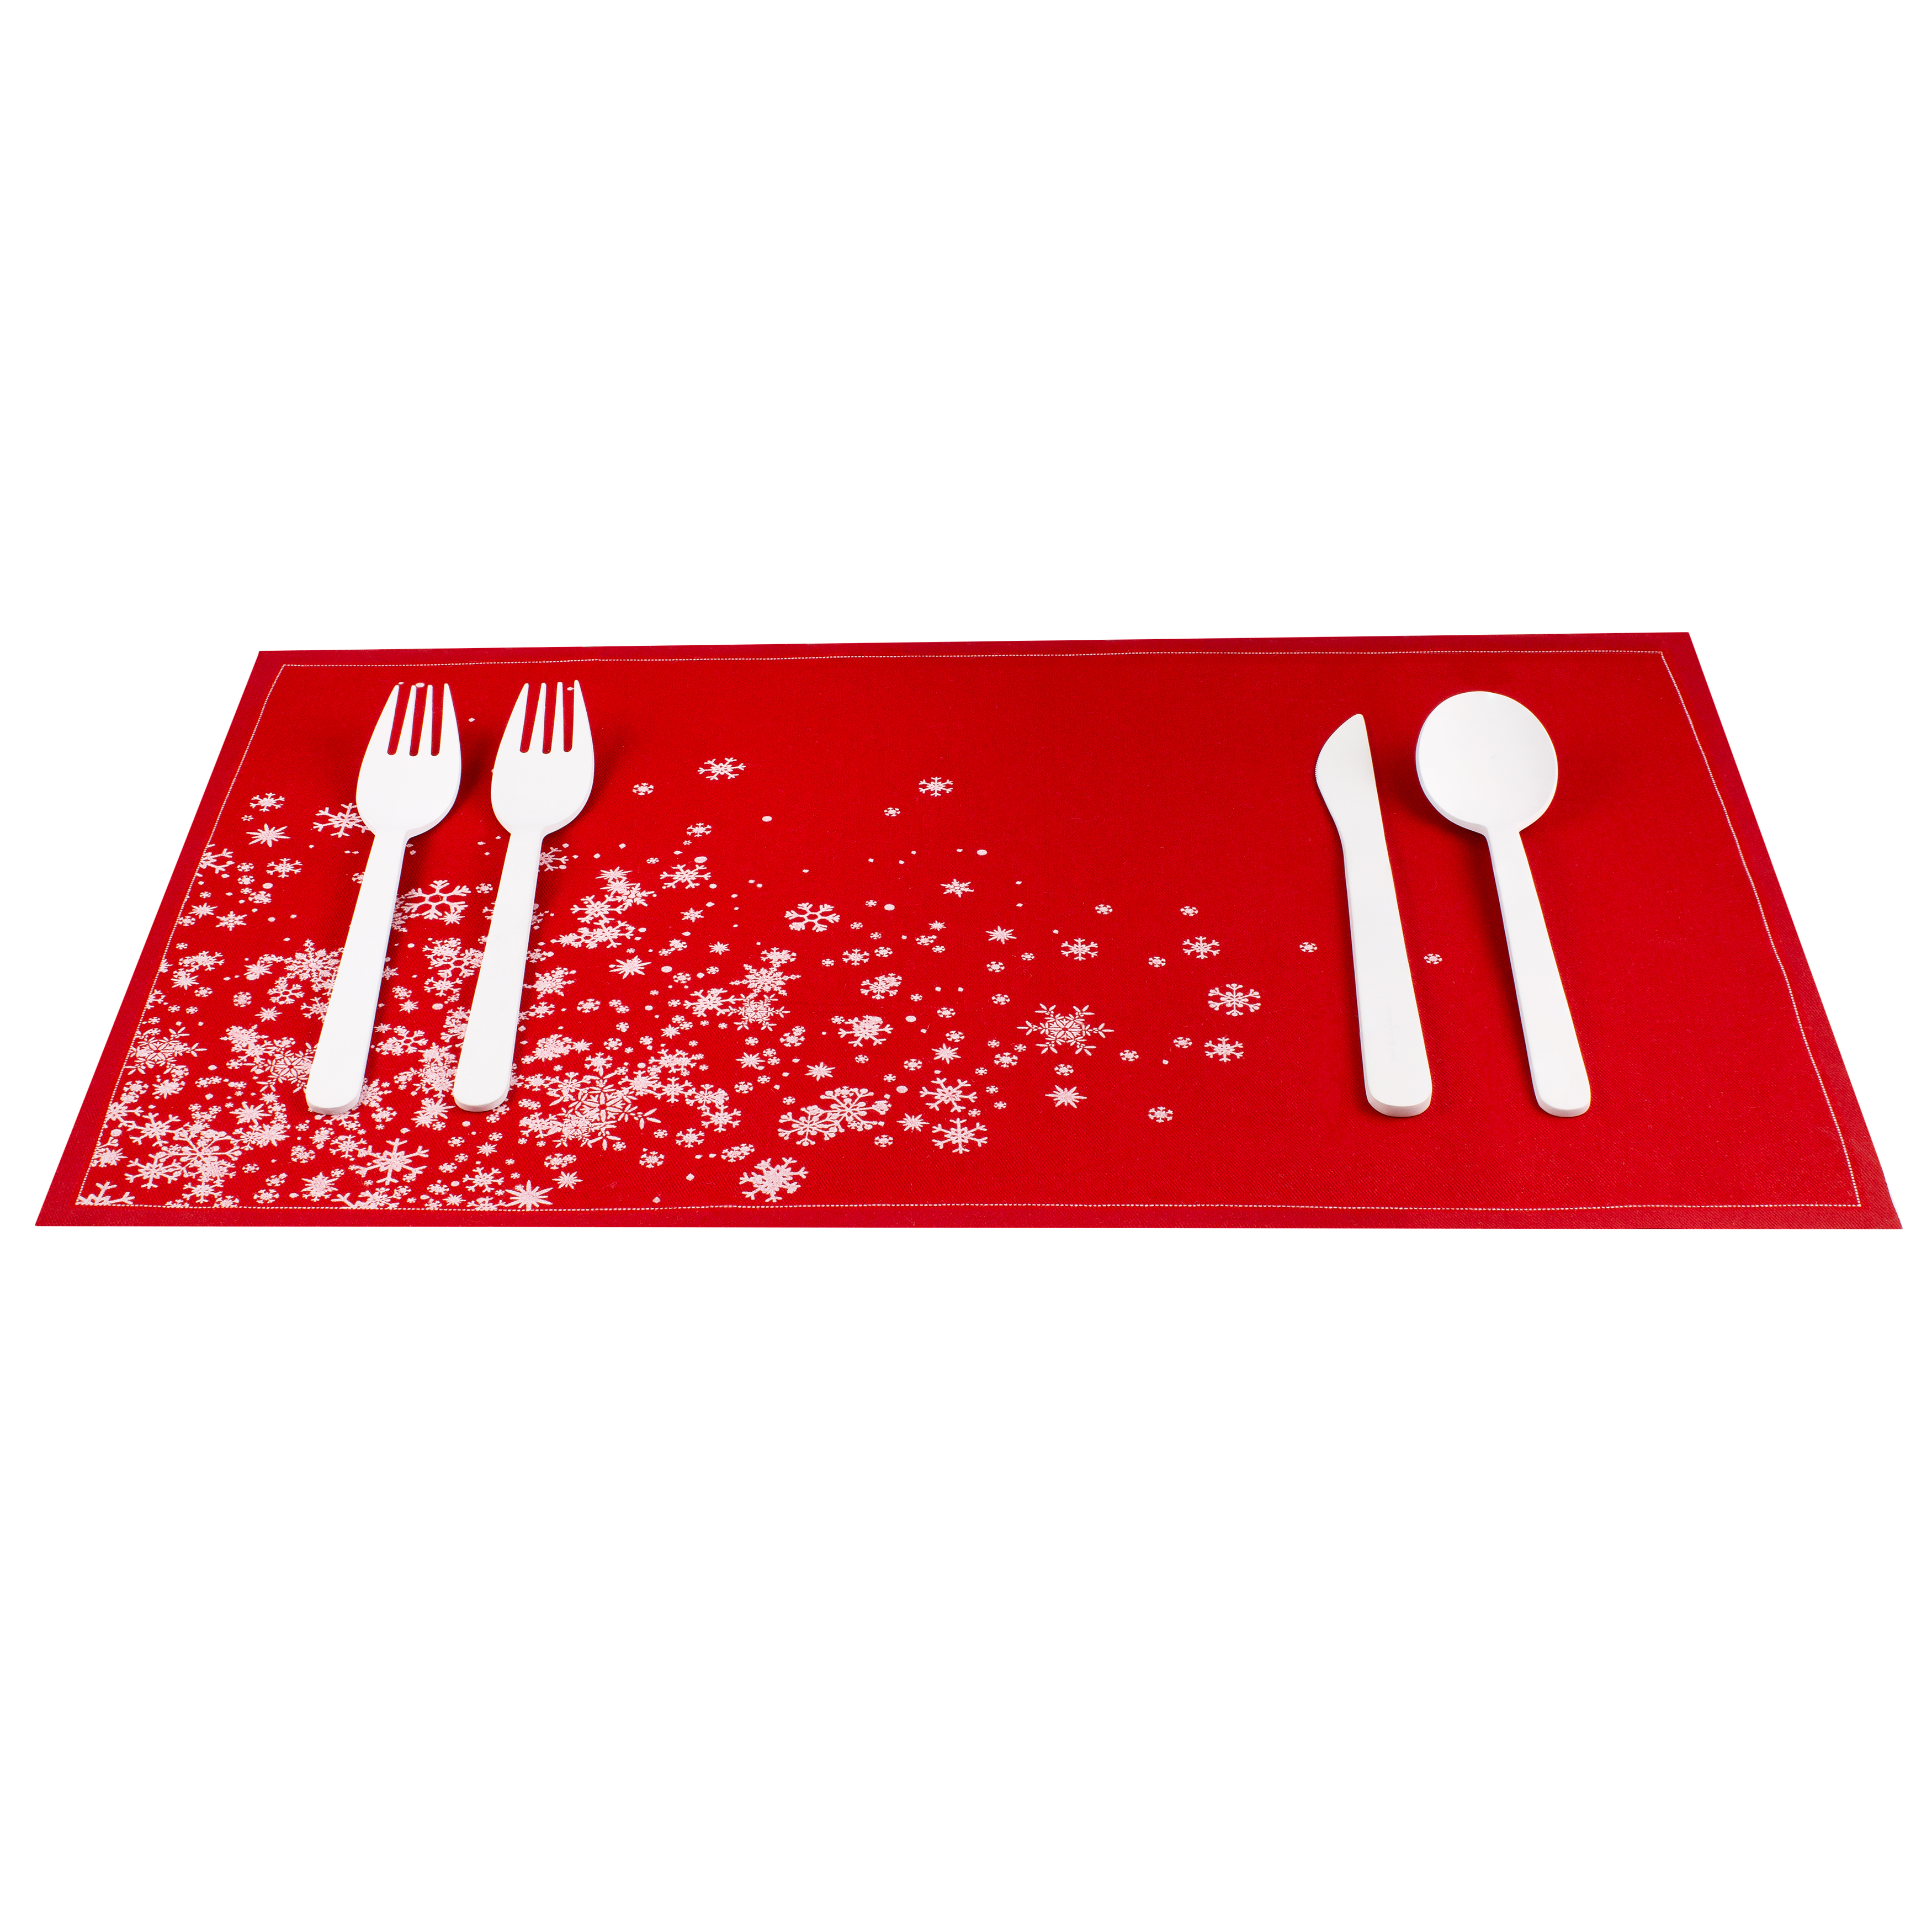 """Snowflake Cascade Red Cotton Placemat - 18.9"""" x 12.6"""" - 12 Units"""